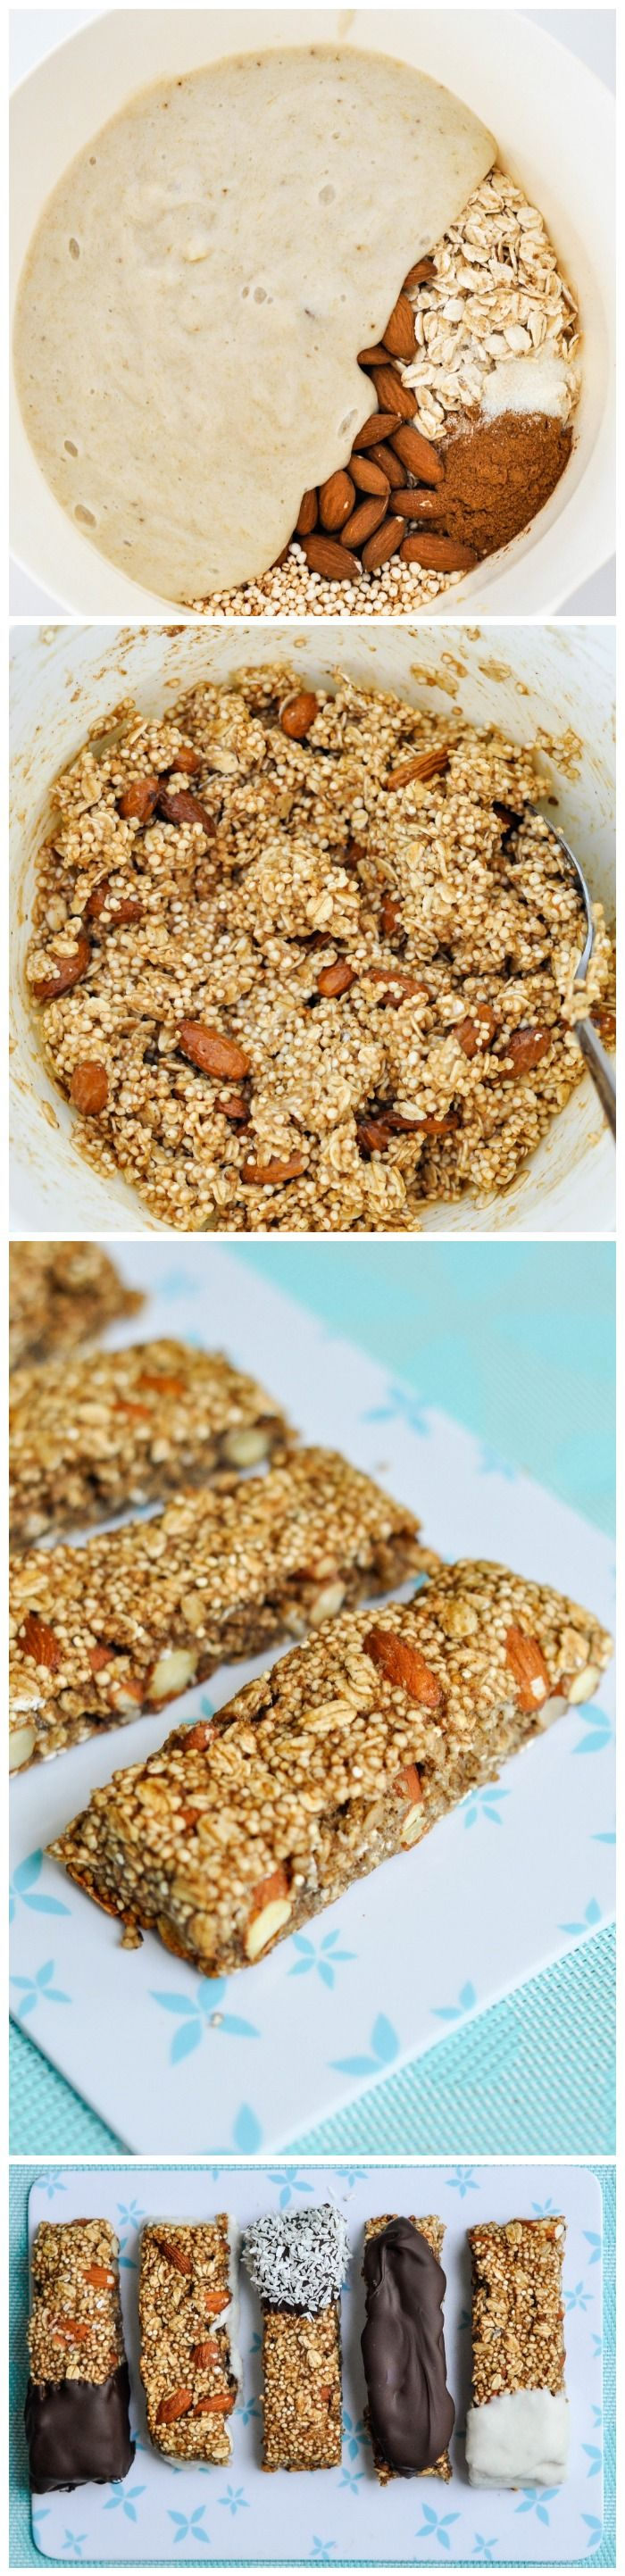 PUFFED QUINOA OAT BARS RECIPE - Dip in chocolate or melted coconut for a extra special treat! Easily customize this recipe with other ingredients. - If you like this pin, repin it and follow our boards :-)  #FastSimpleFitness - www.facebook.com/FastSimpleFitness